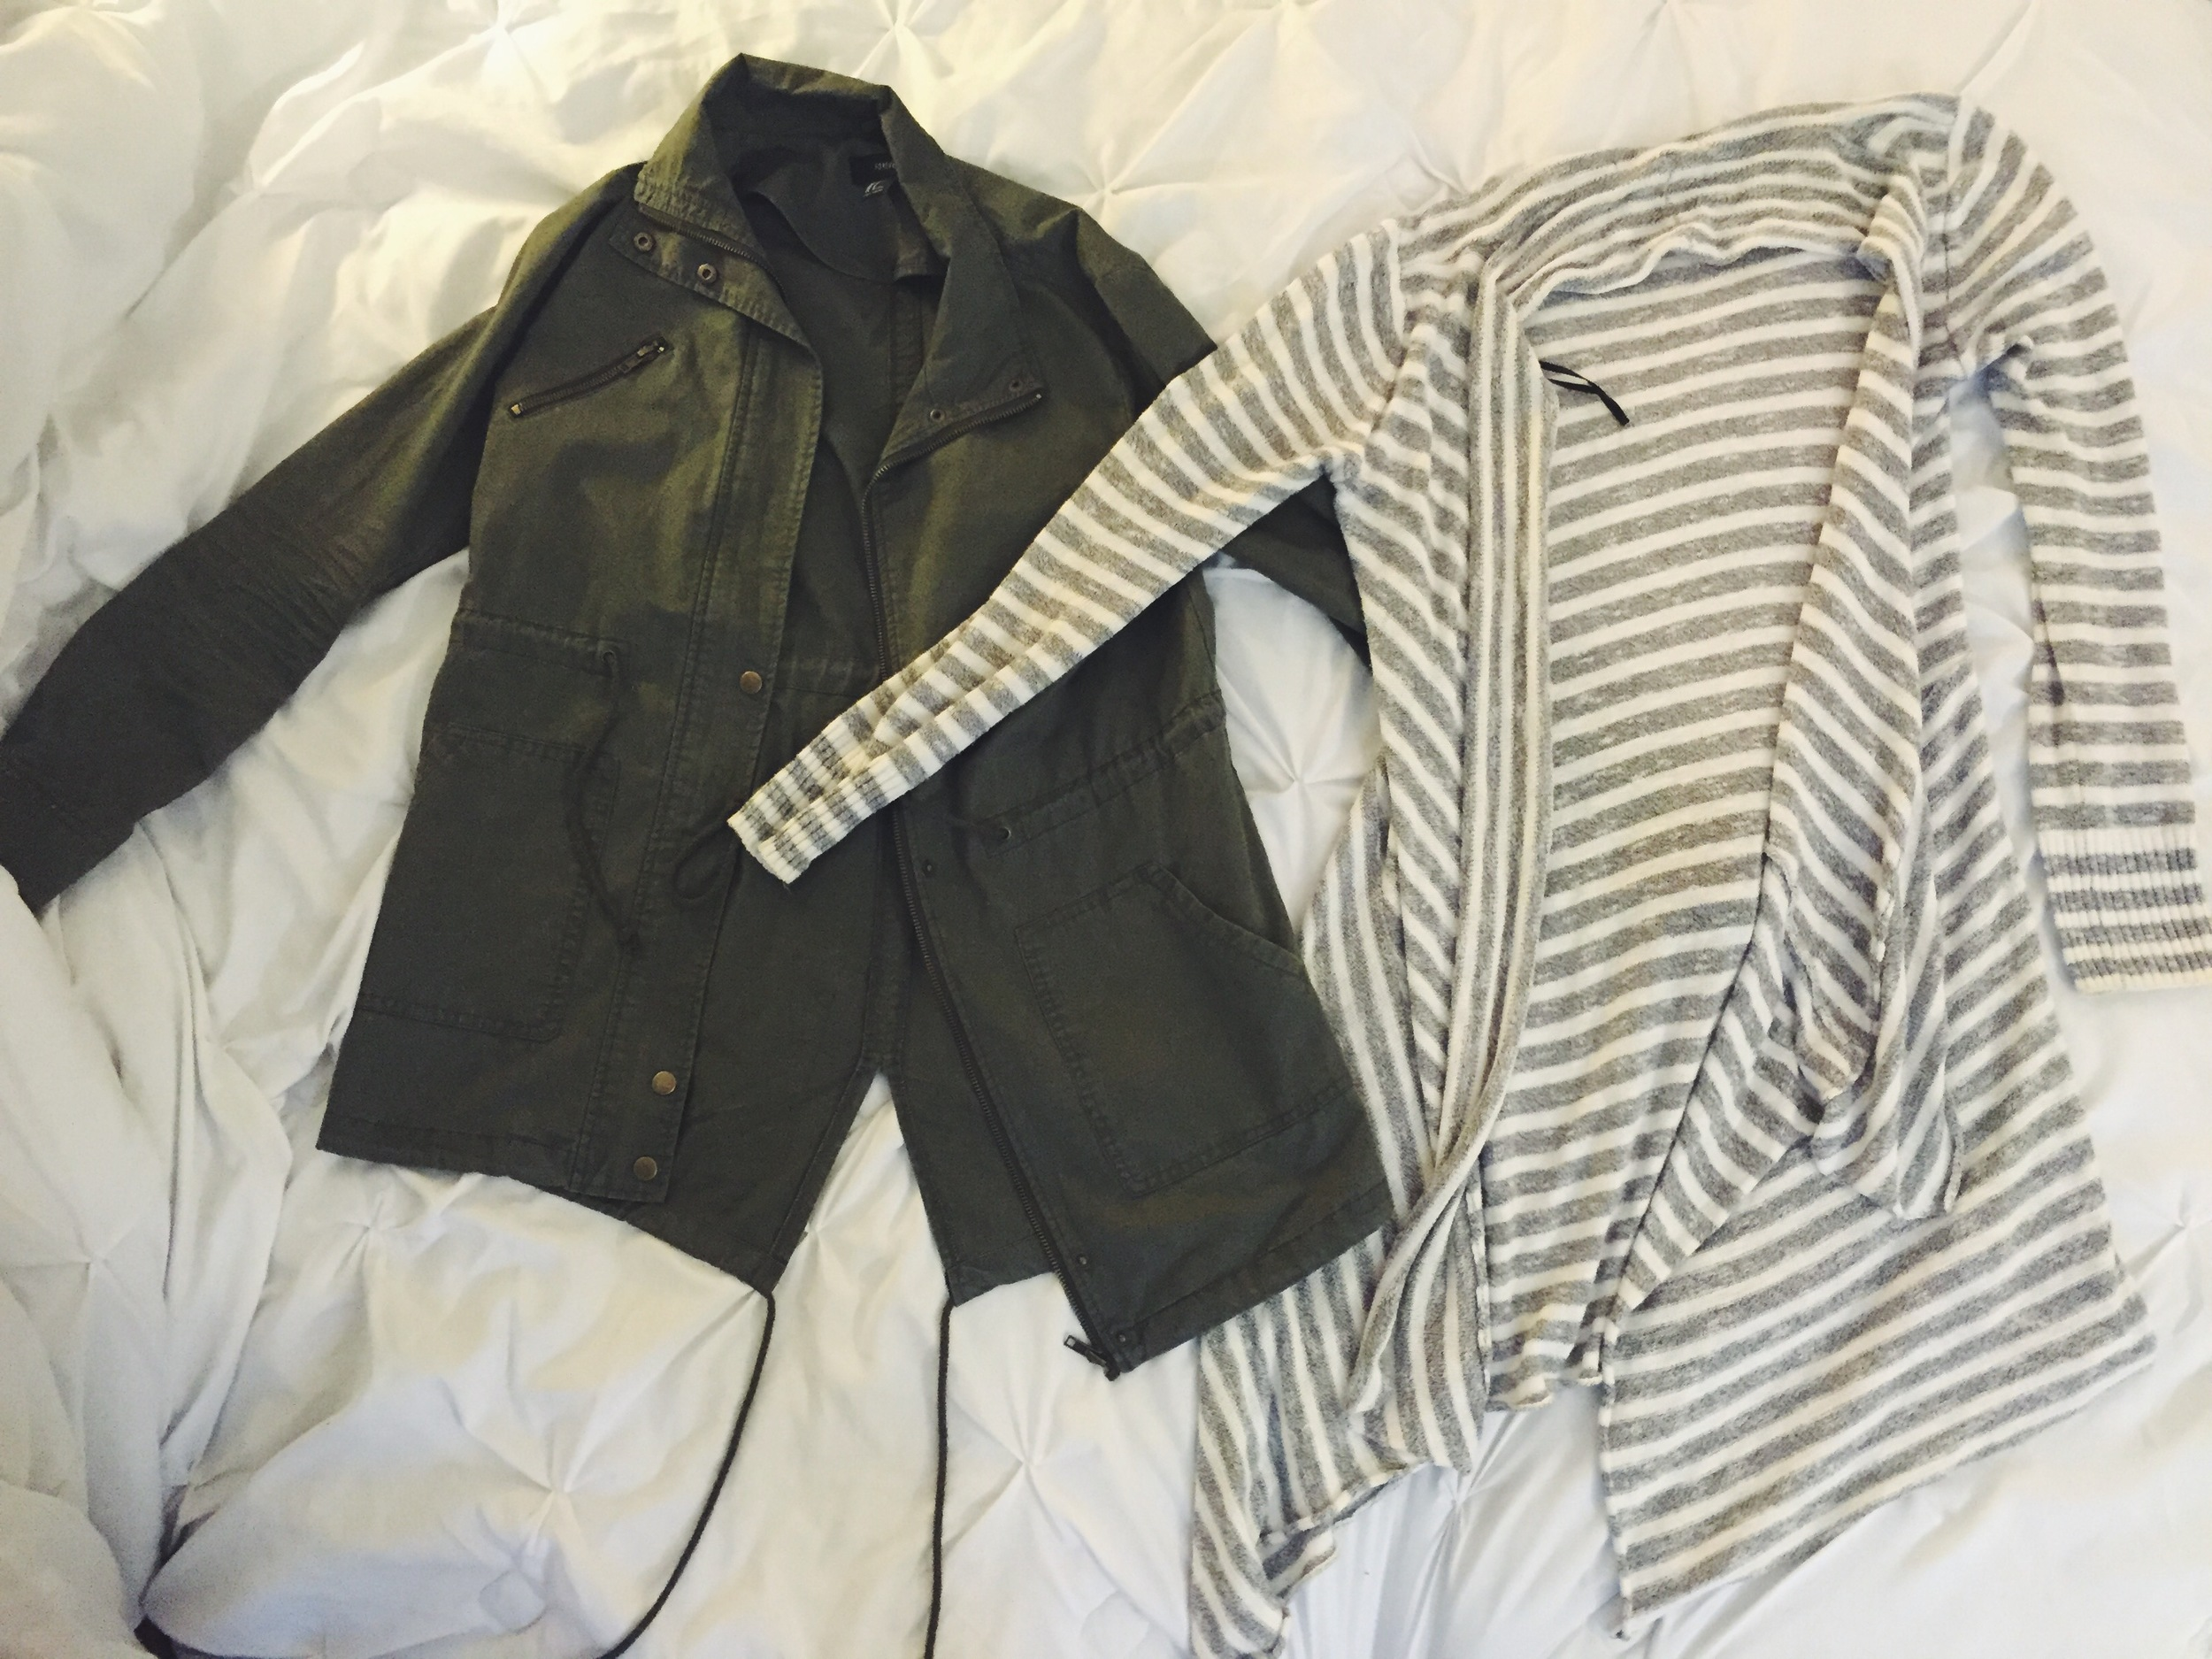 Light Jacket & Sweaters for Cooler Night Temperatures